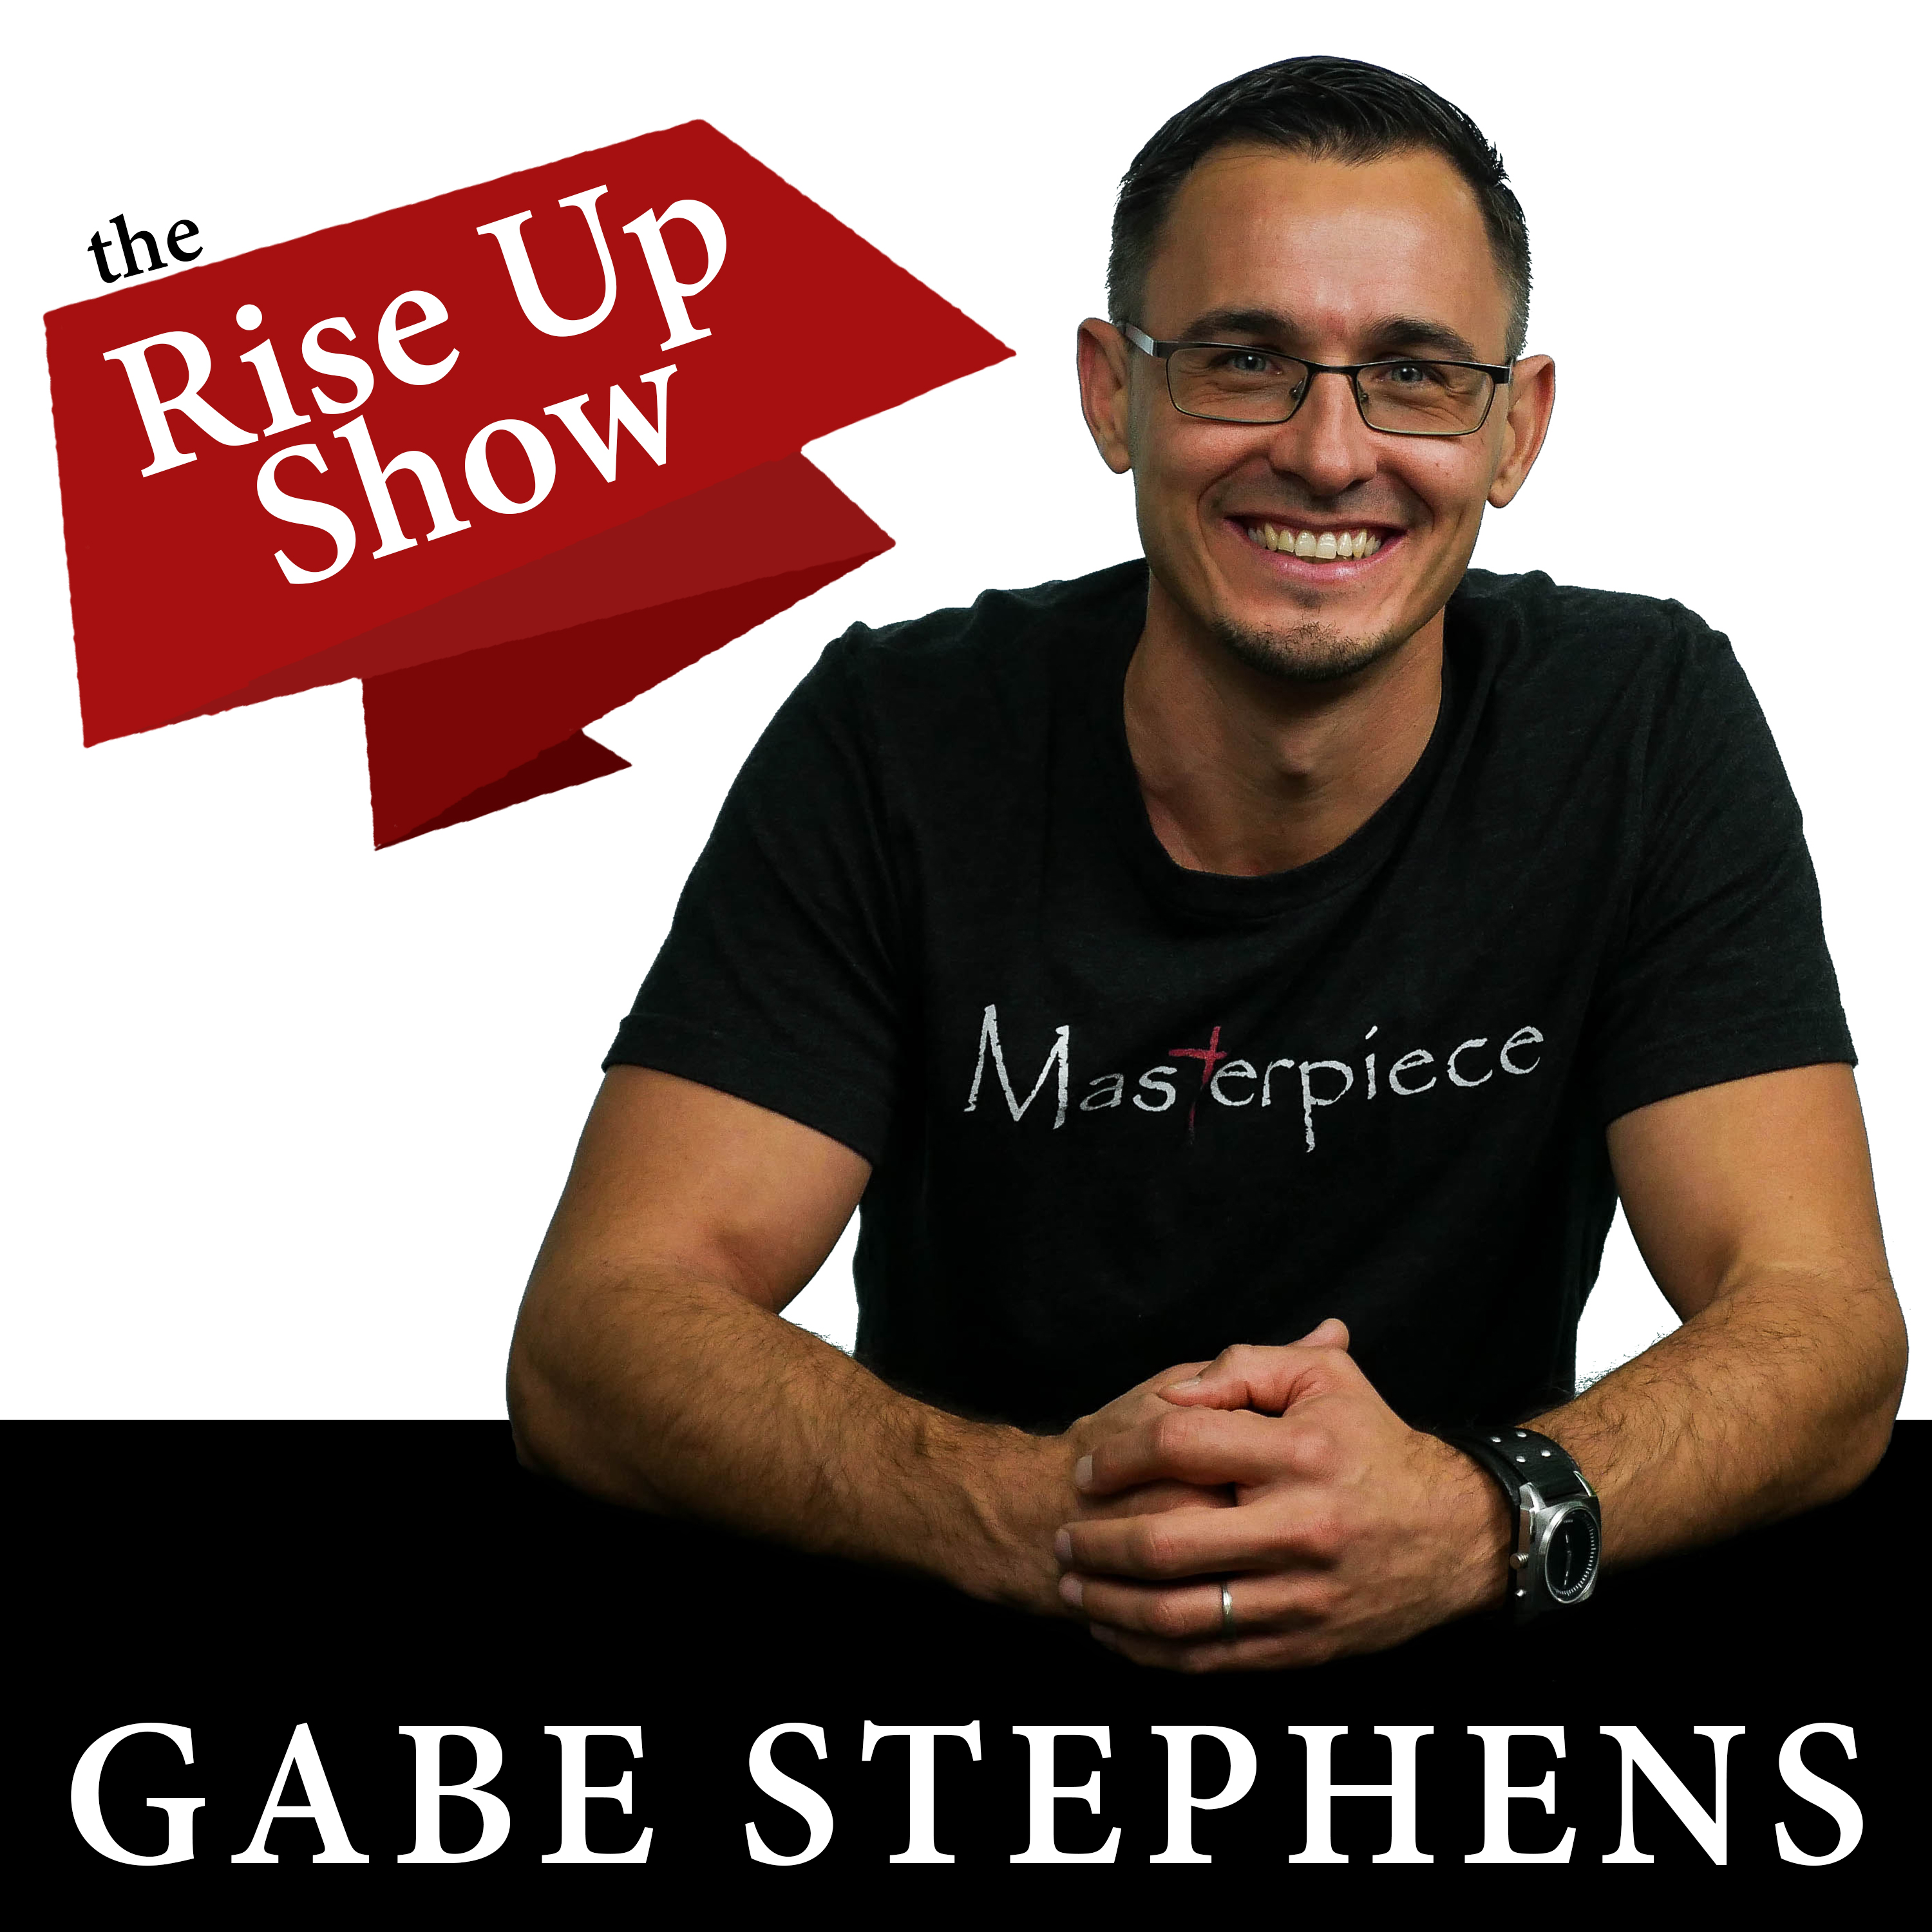 The Rise Up Show